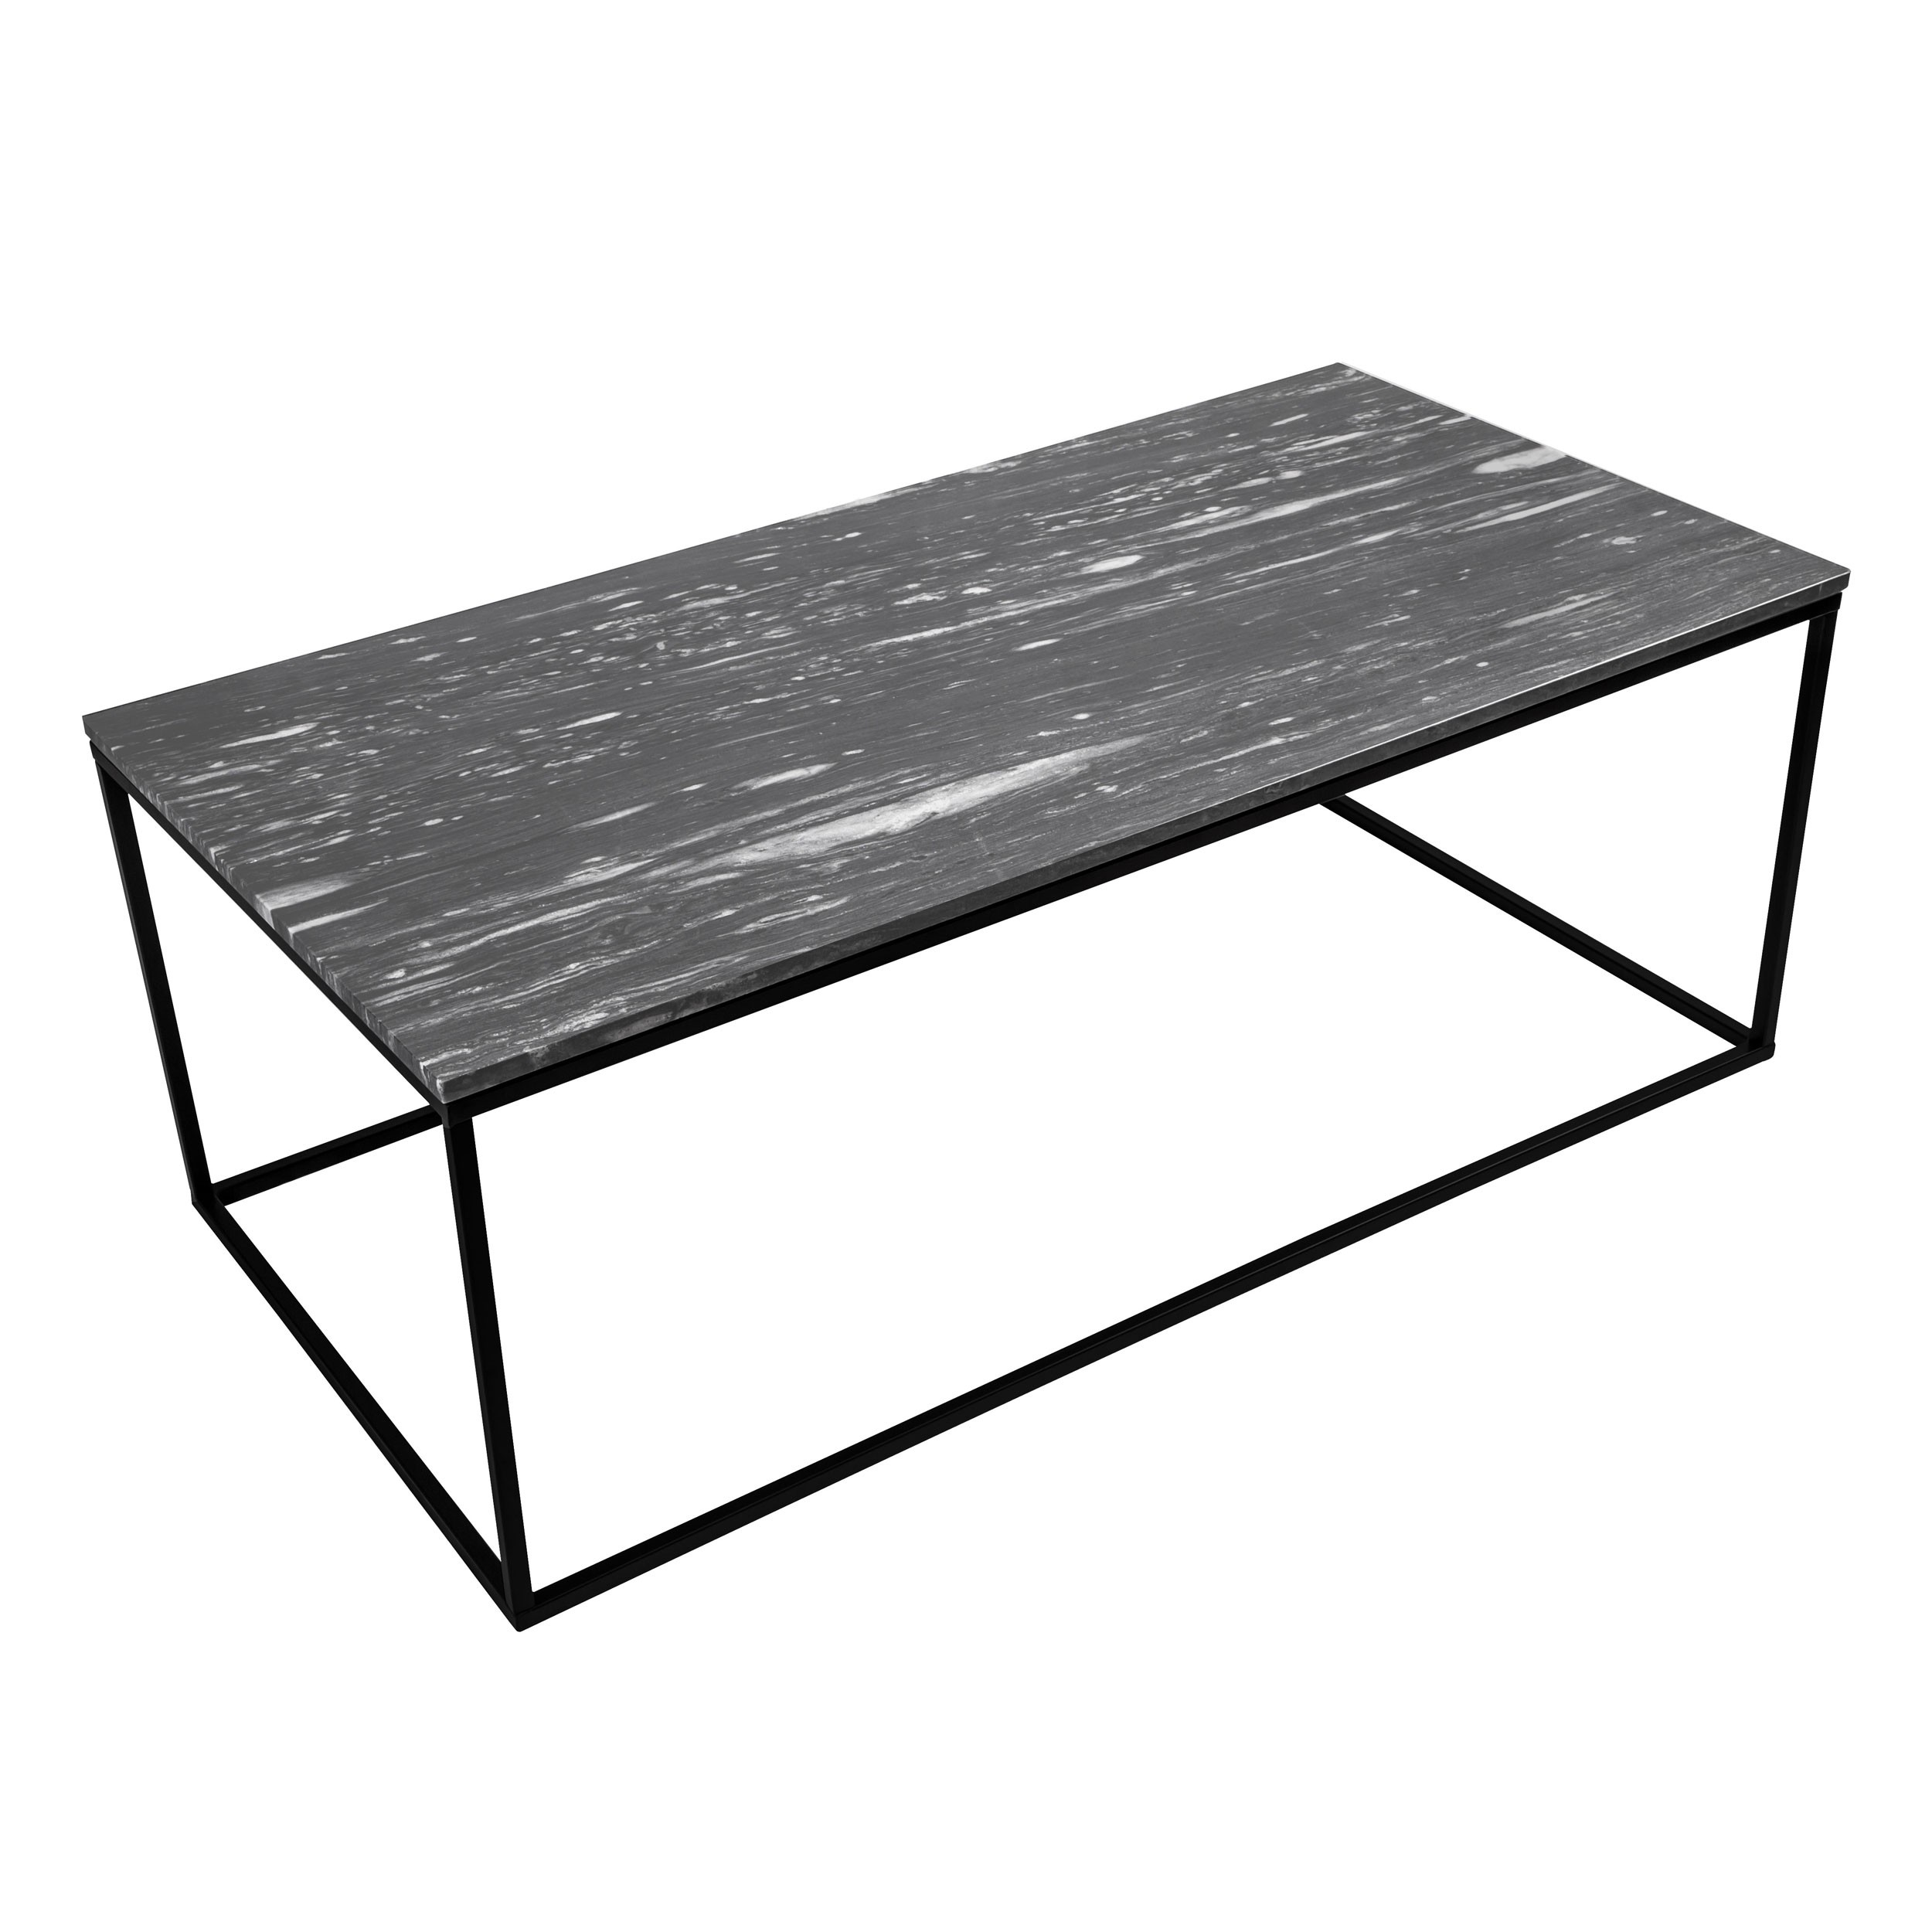 table basse rectangulaire dagmar marbre noire achetez les tables basses rectangulaires dagmar. Black Bedroom Furniture Sets. Home Design Ideas